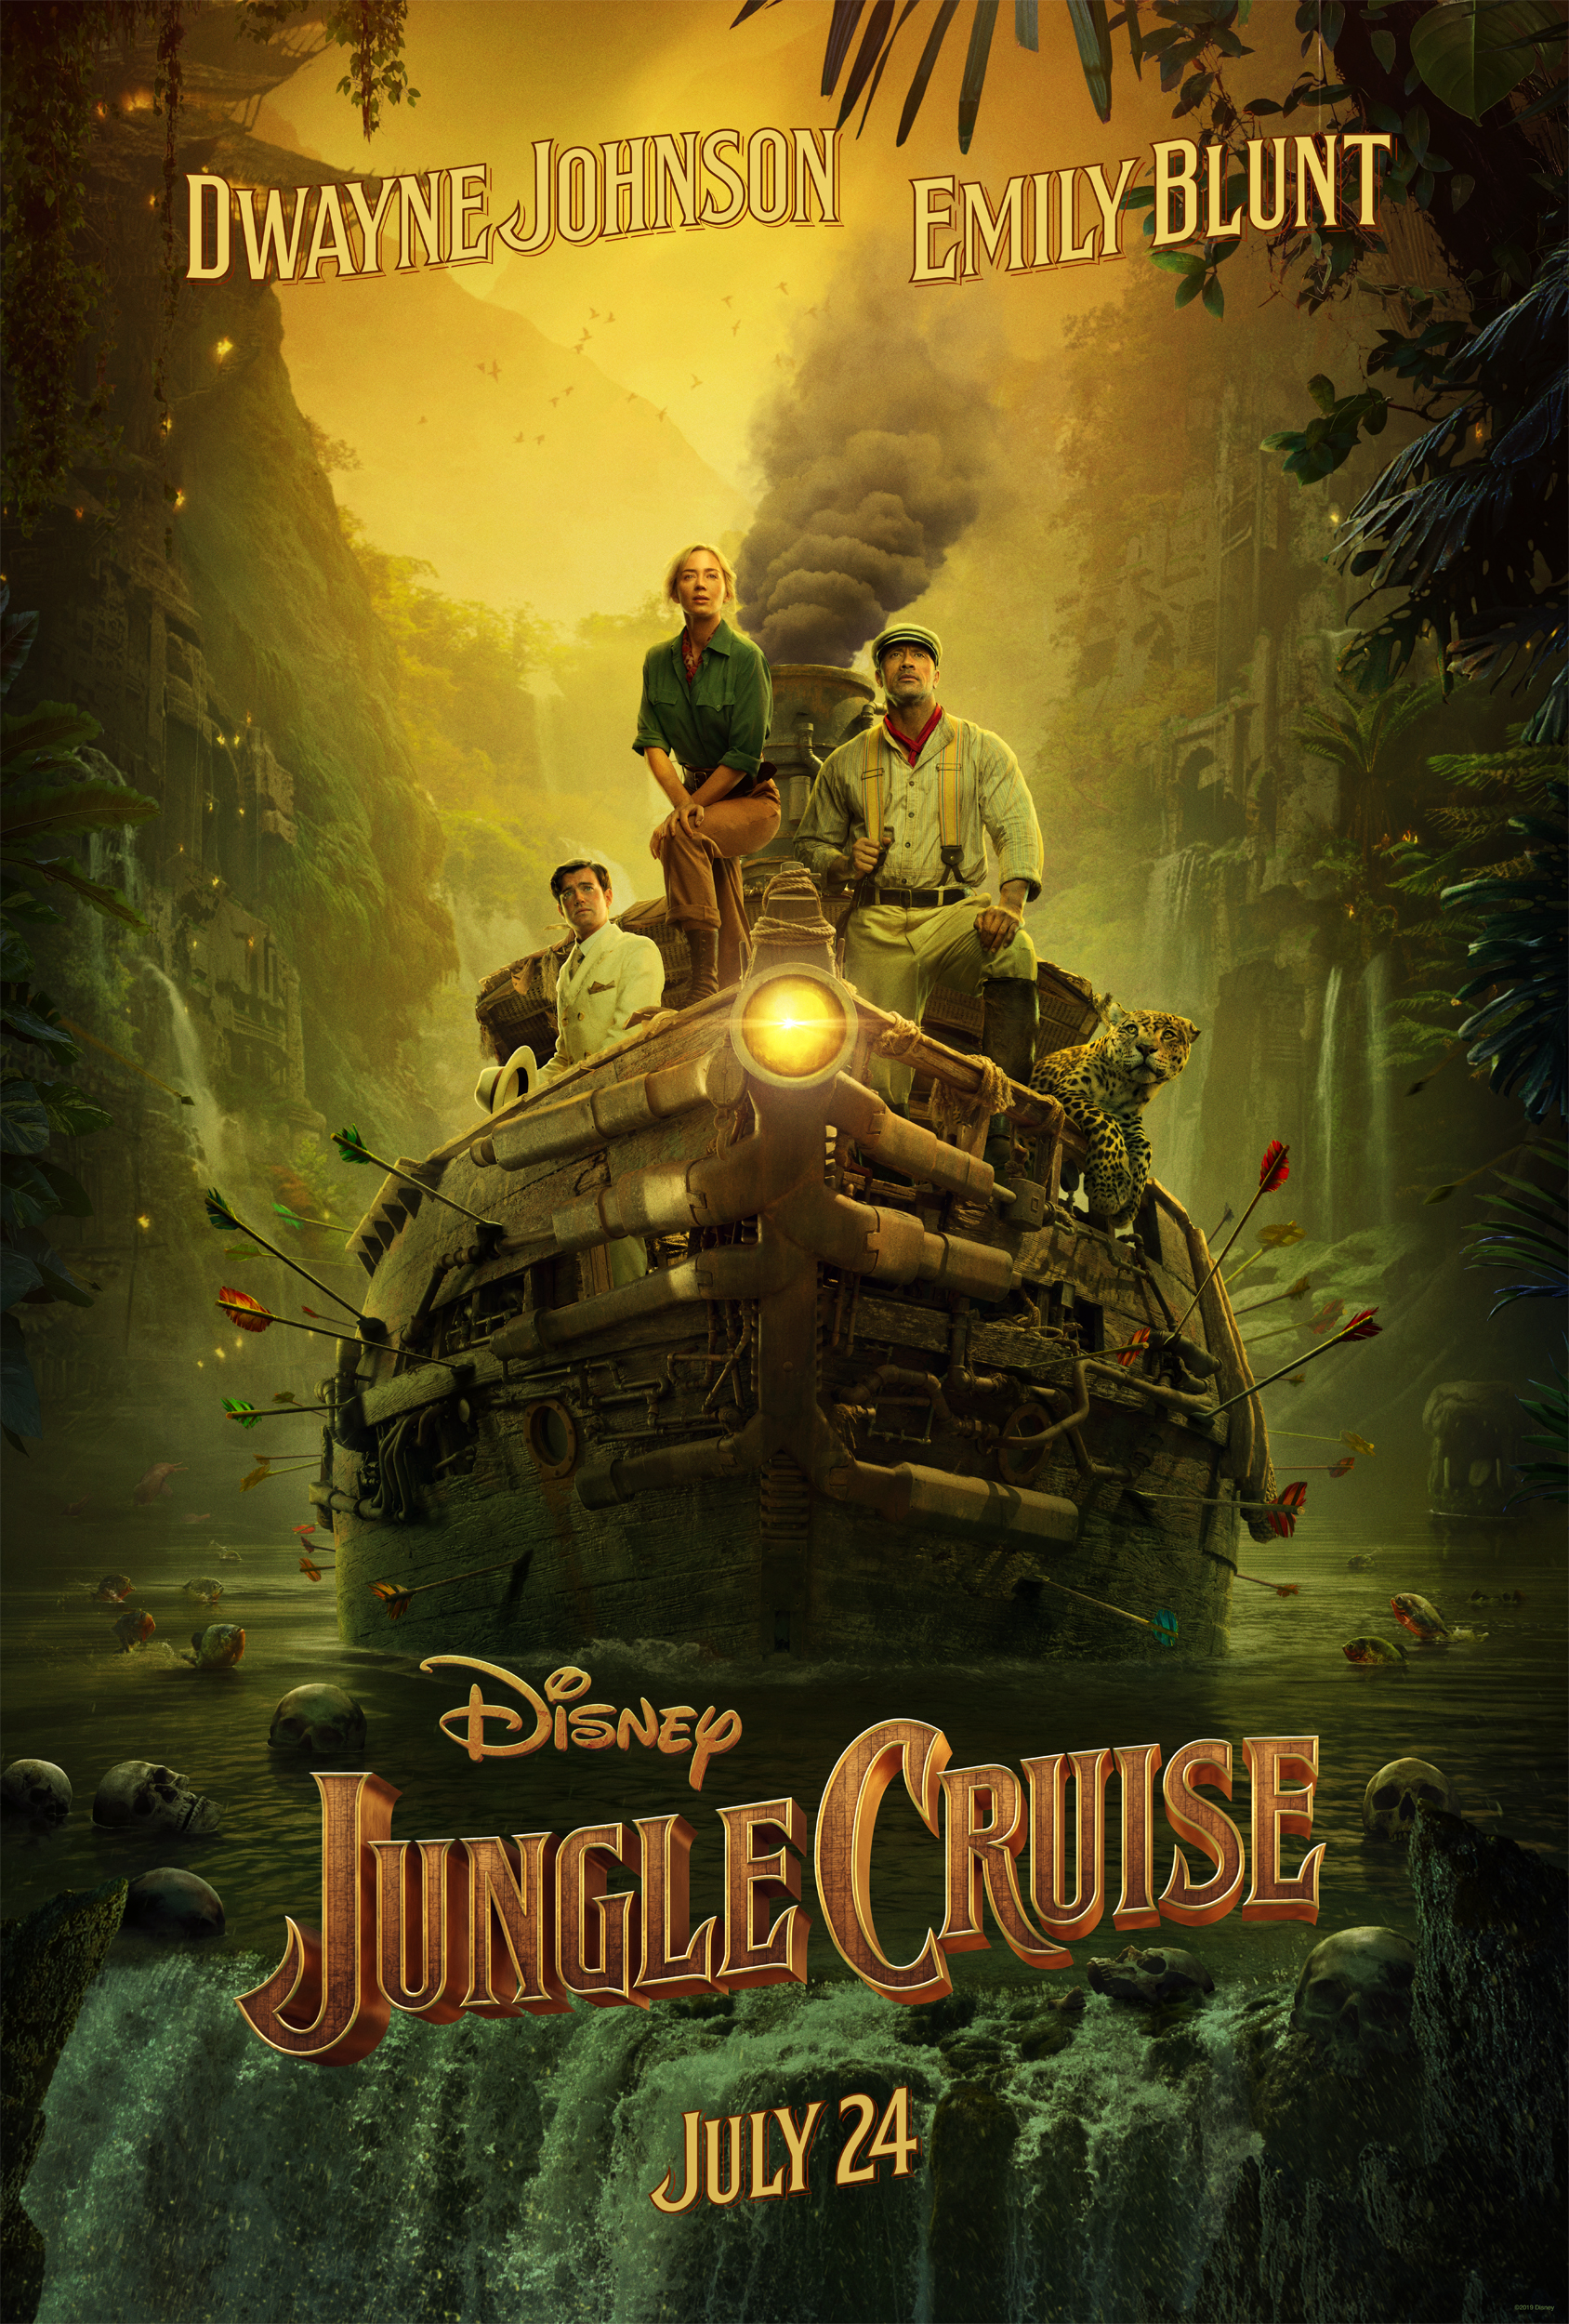 First Look: Jungle Cruise Teaser Trailer & Poster